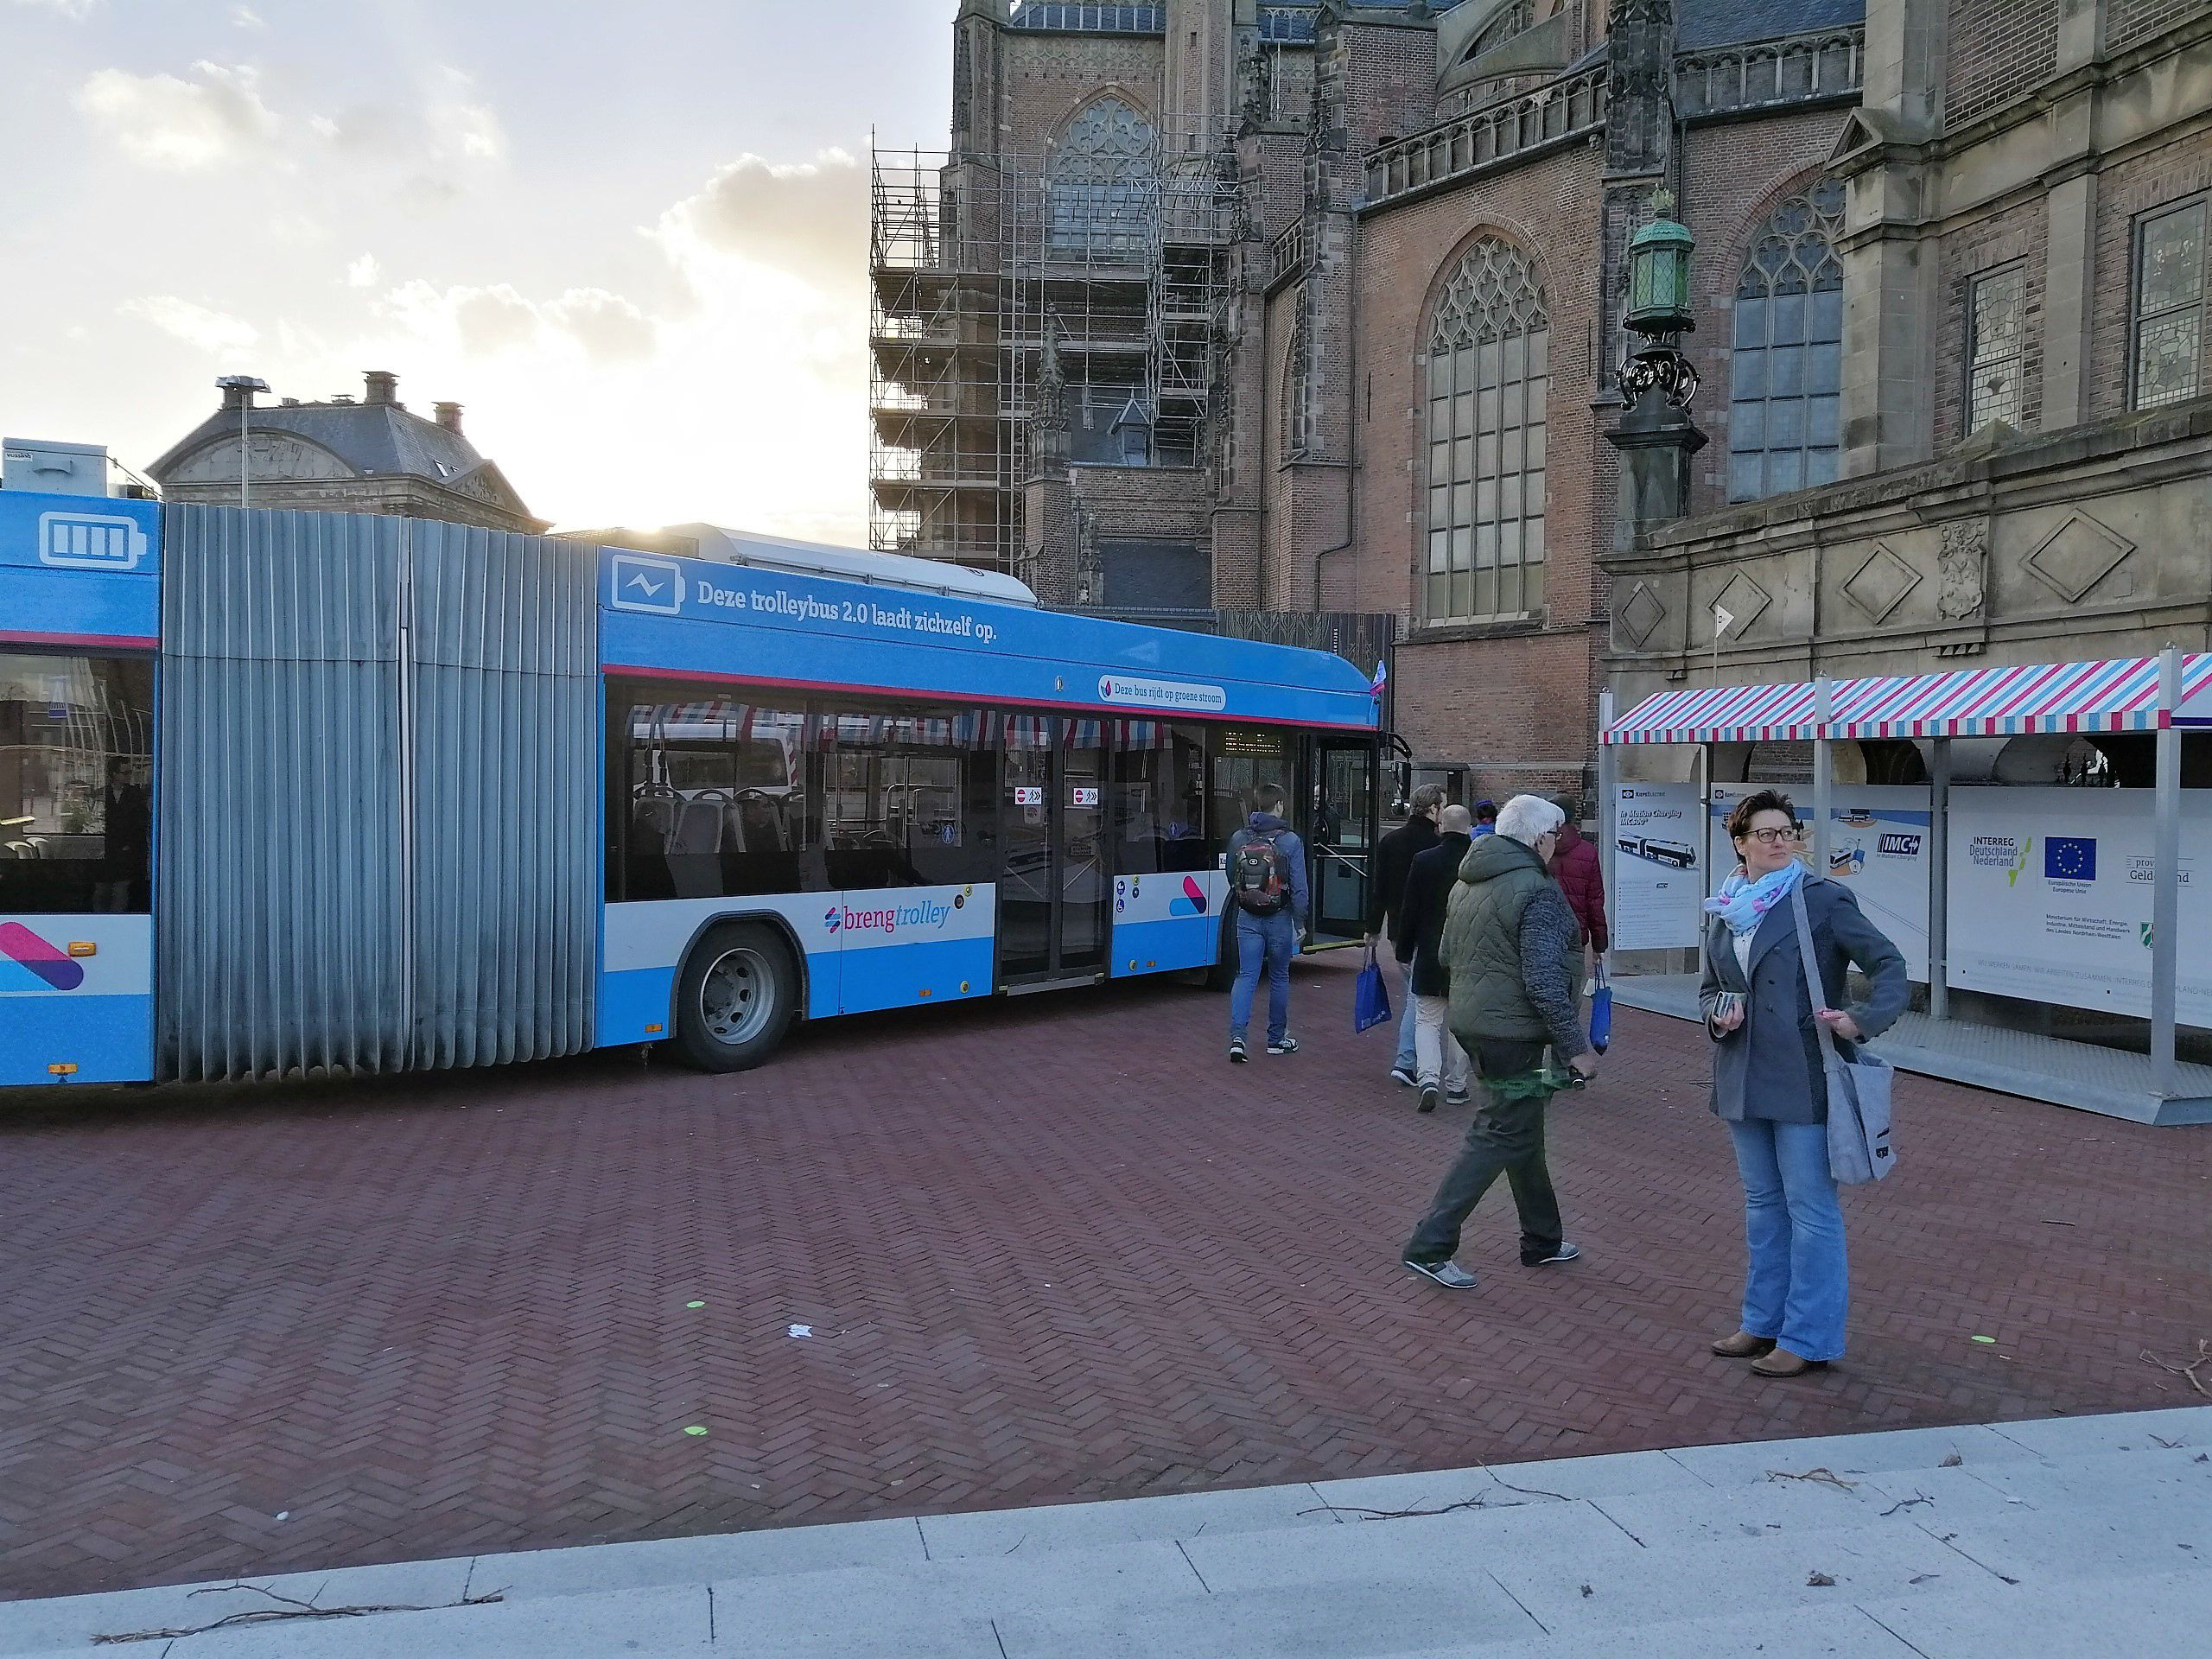 One of the trolleybuses that uses batteries that are charged in motion, being tested in the Netherlands' Gelderland region. ©E-Bus2020